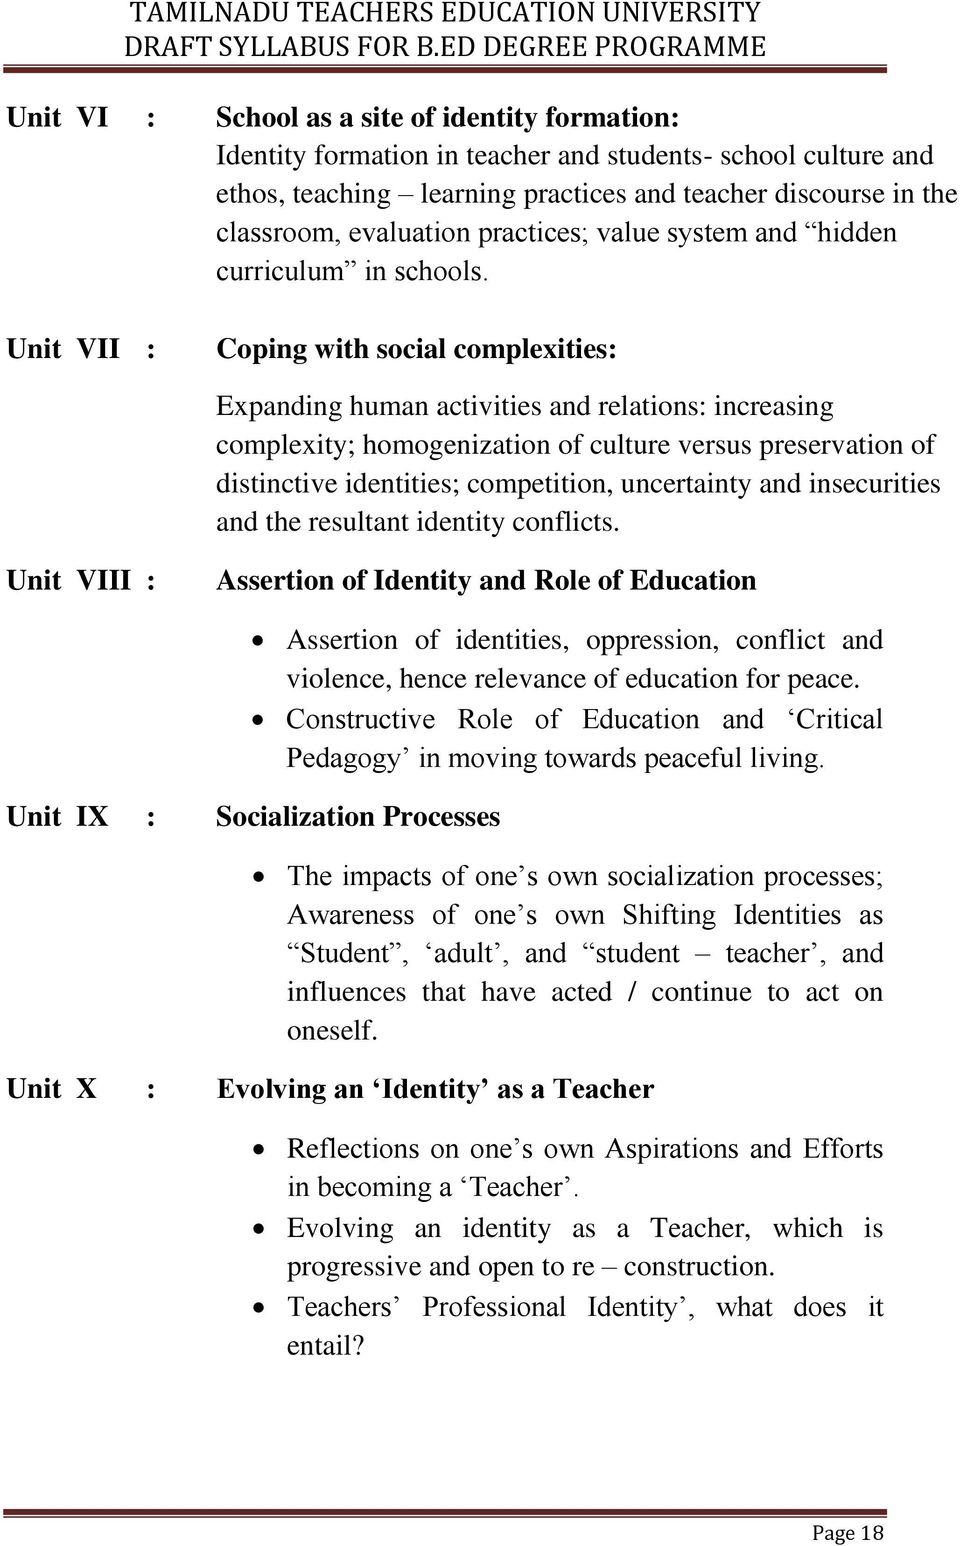 Unit VII : Coping with social complexities: Expanding human activities and relations: increasing complexity; homogenization of culture versus preservation of distinctive identities; competition,